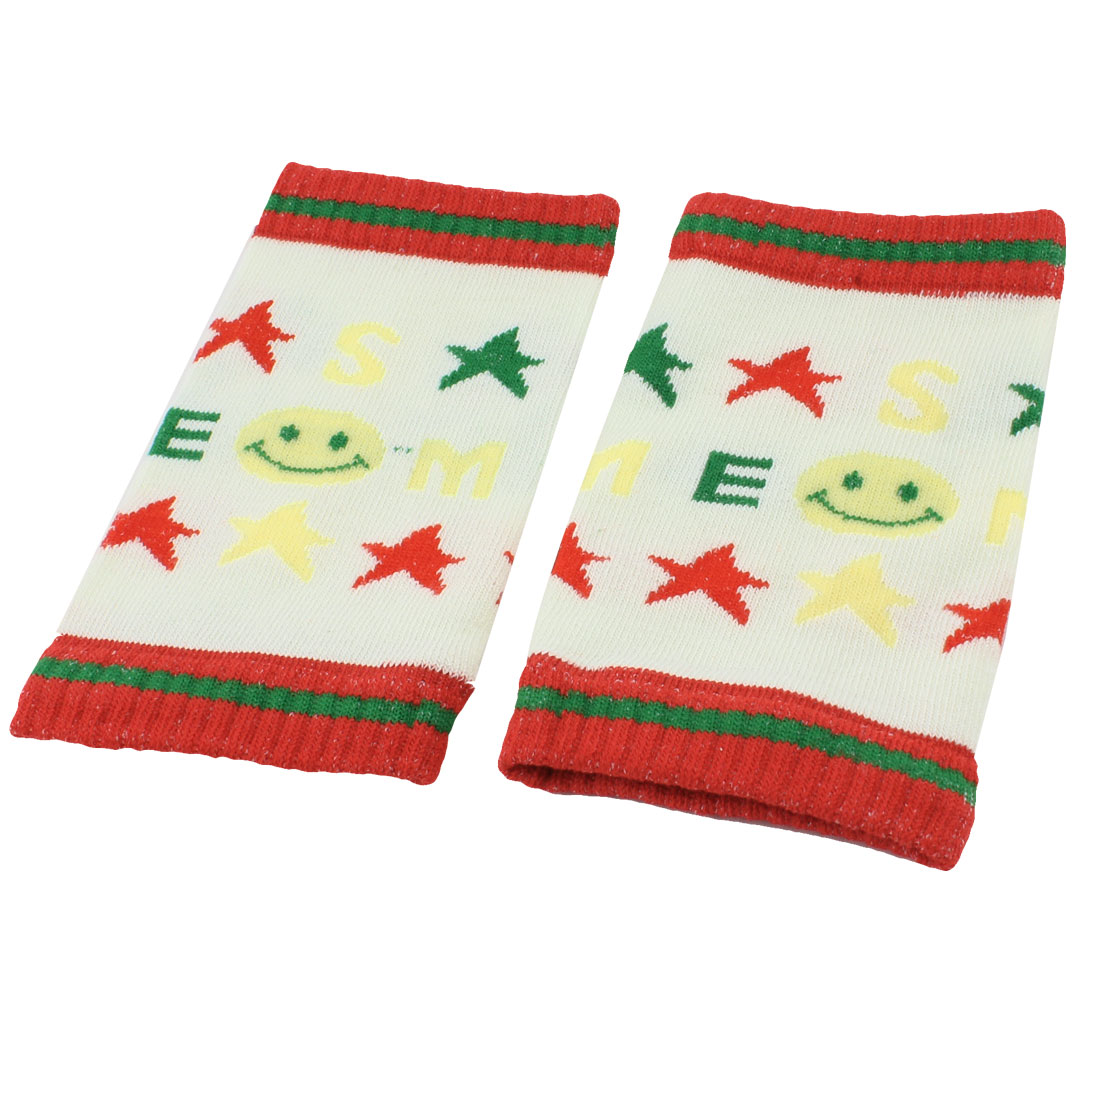 Baby Toddler Red Green Star Print Stretchy Knee Support Pad Pair